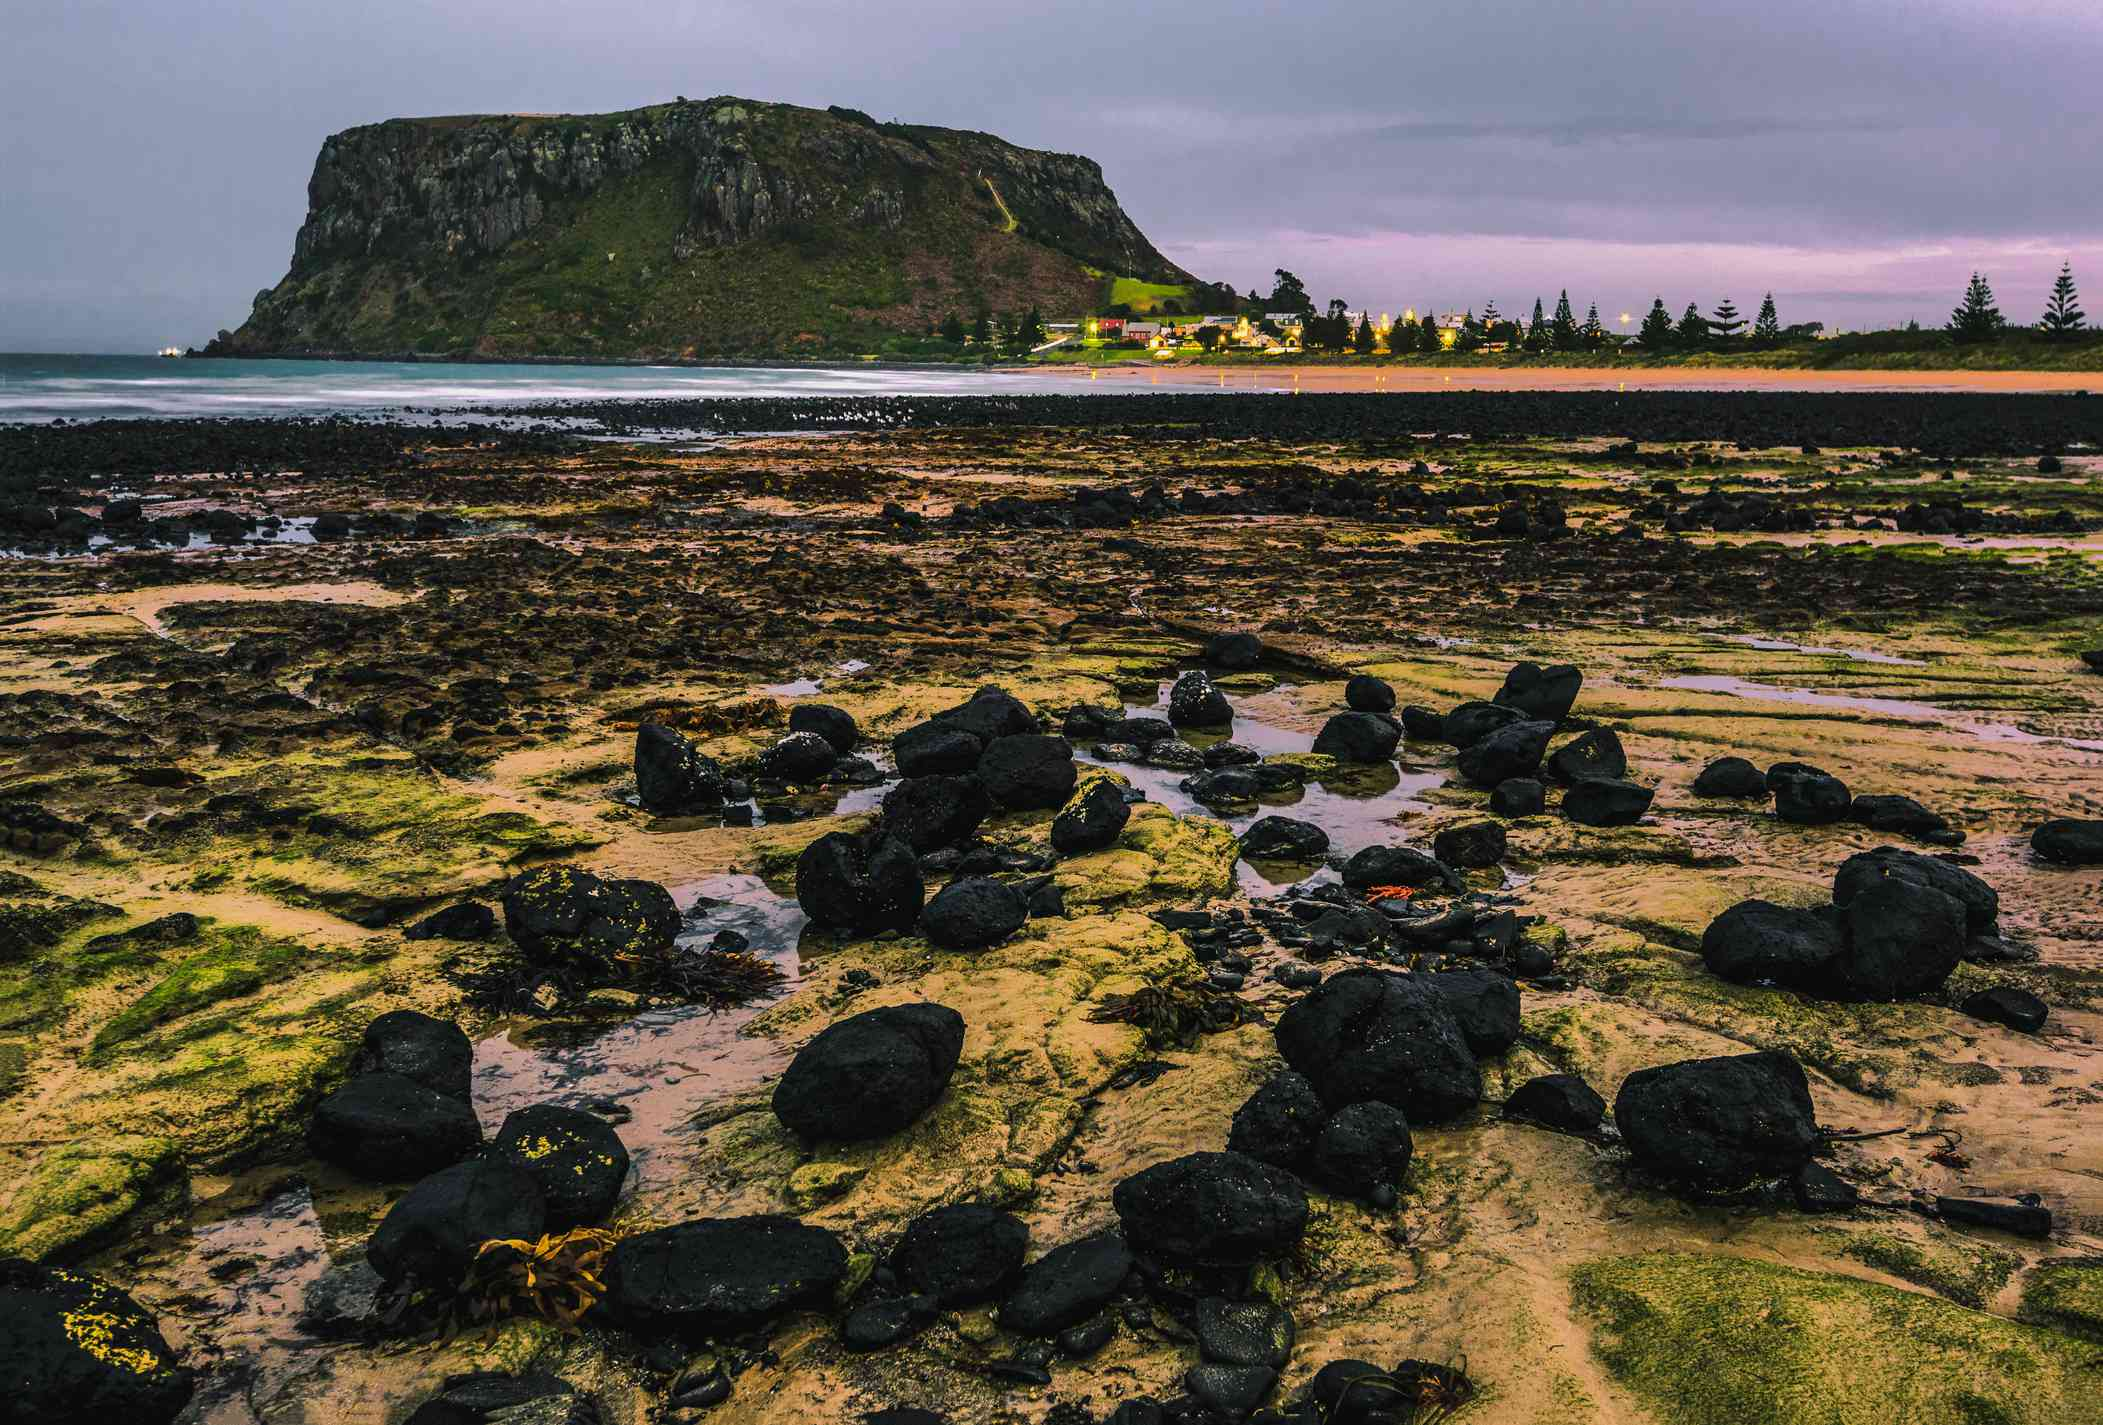 Beaches and rock formations